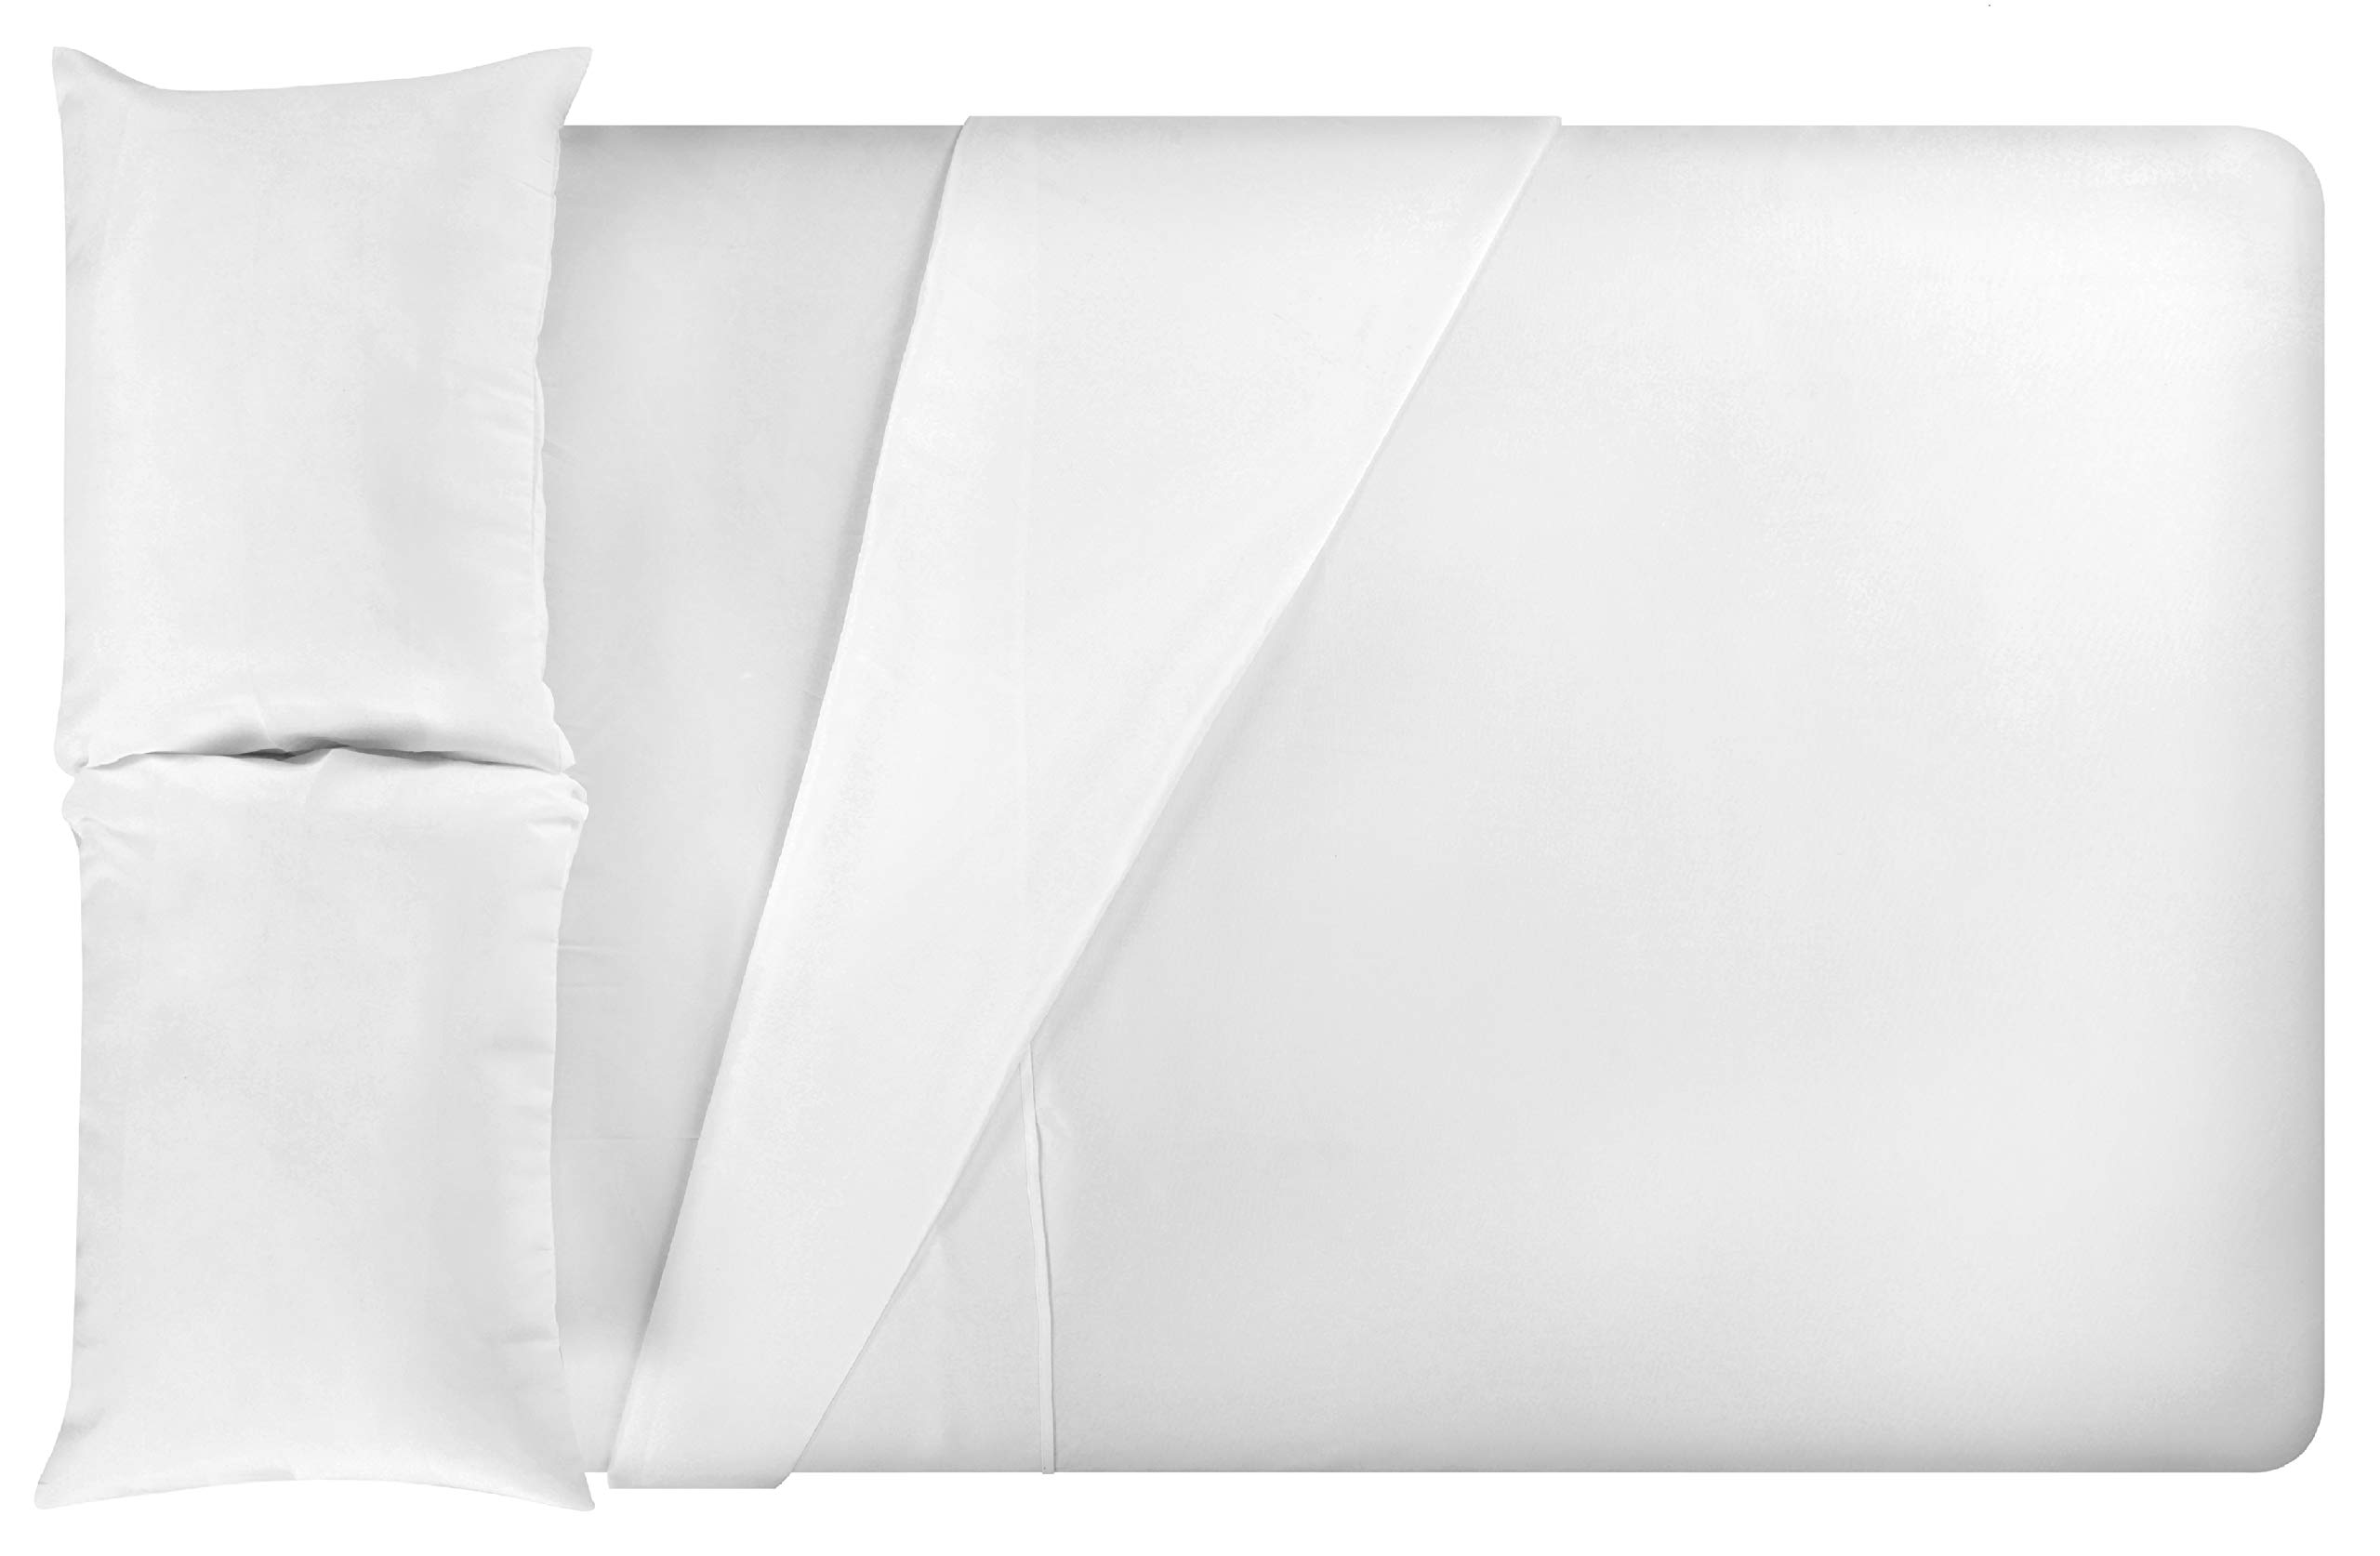 LuxClub 4 PC Microfiber and Bamboo Sheet Set: Bamboo Bedding Sheets with Microfiber - Softer and More Breathable Than Cotton - Machine Washable, White, Twin